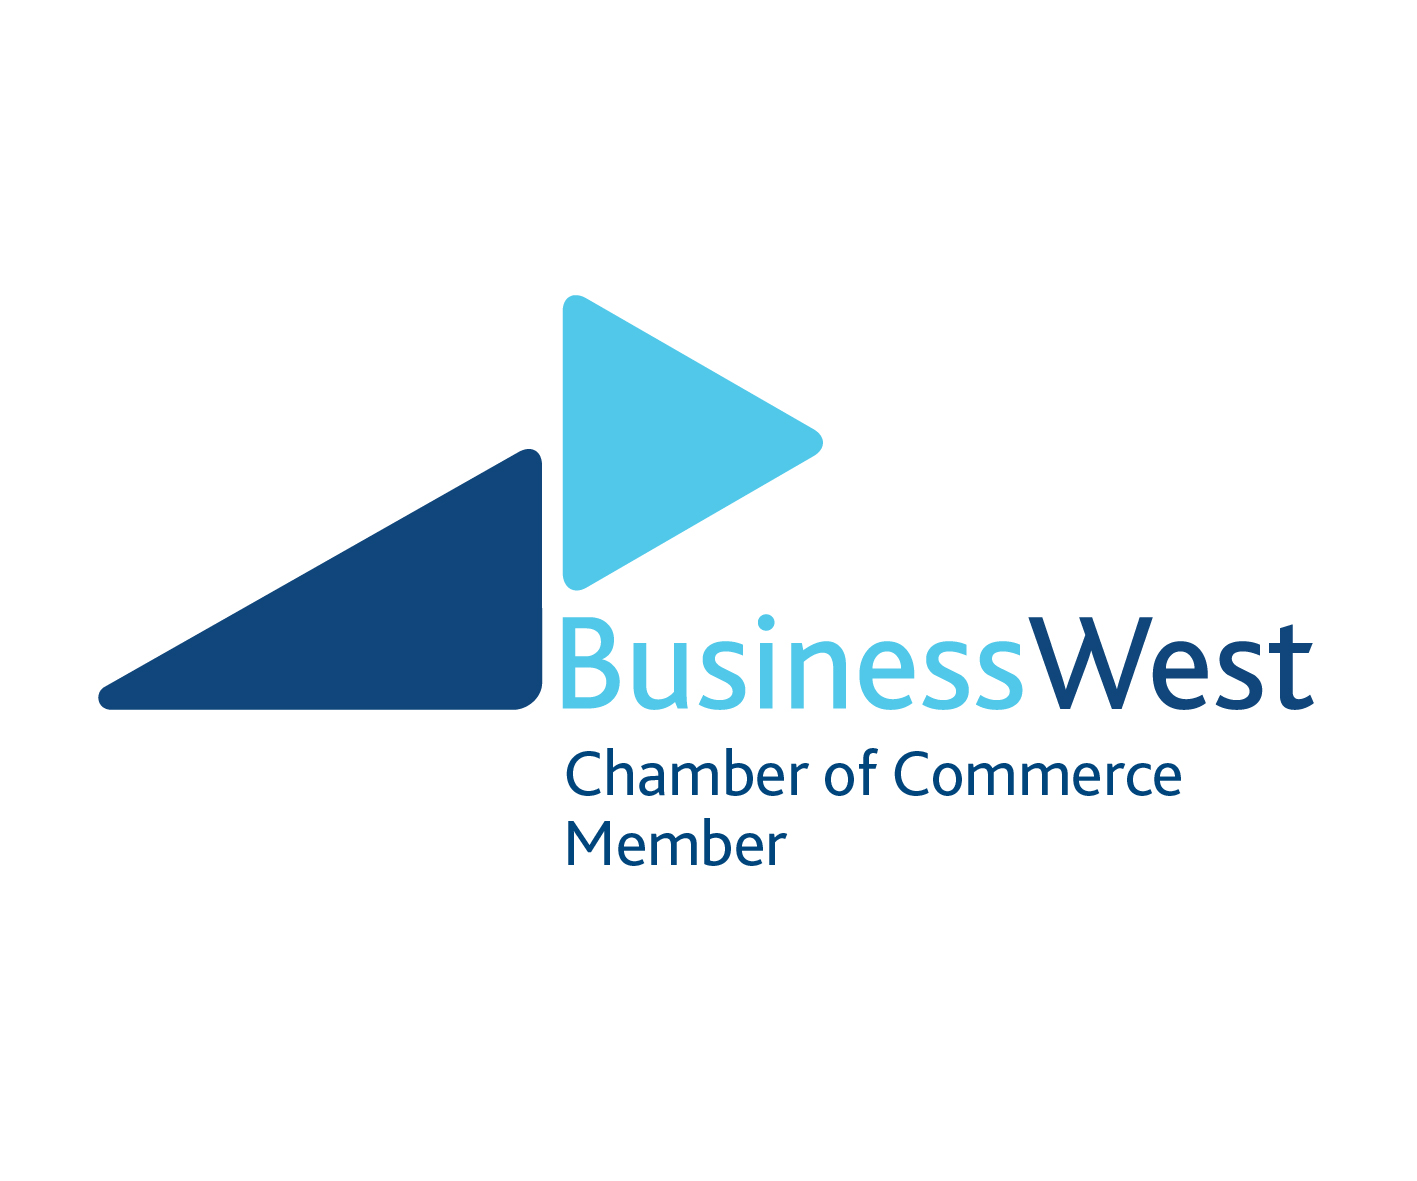 Business West Member Logo